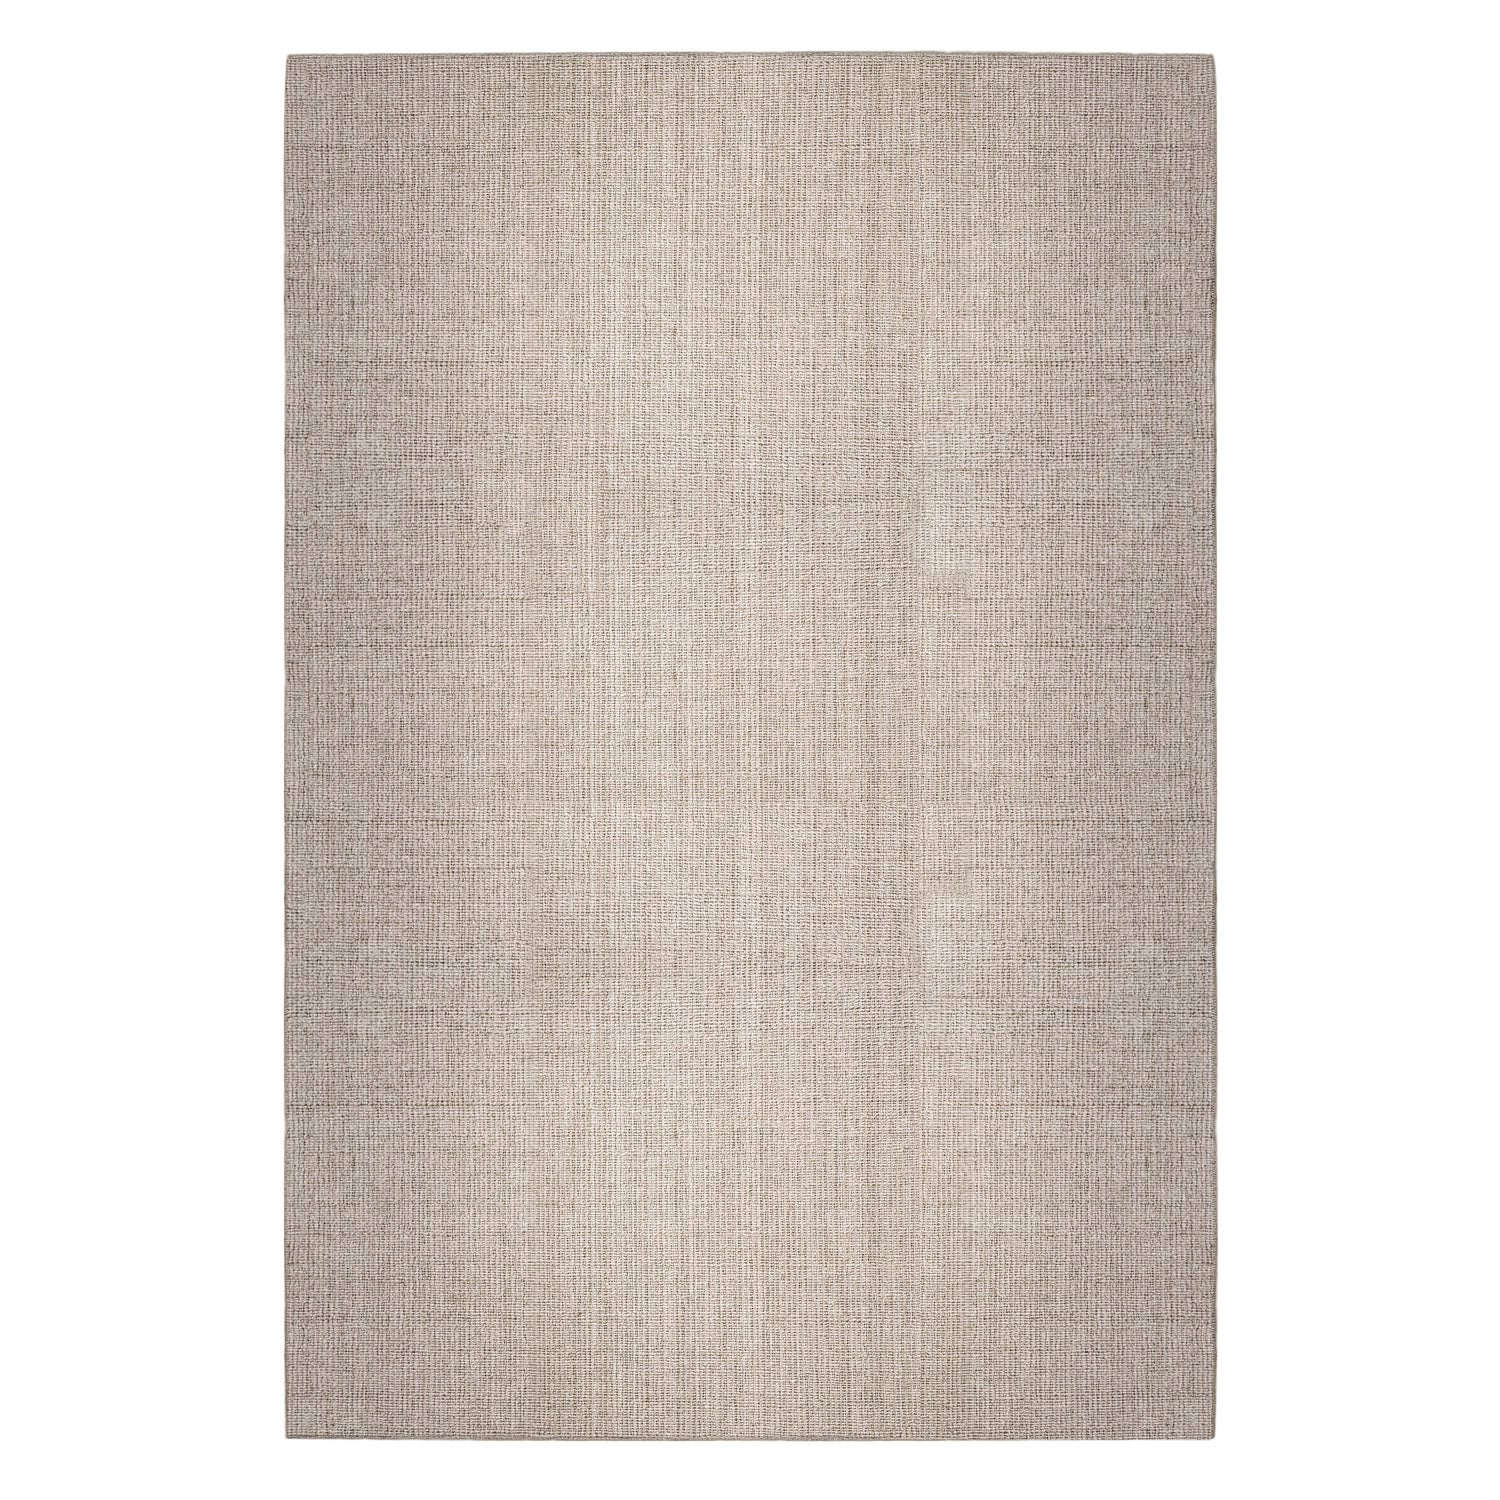 Outdoor Coconut Fiber Rug in Natural Color by Deanna Comellini 200x300 cm